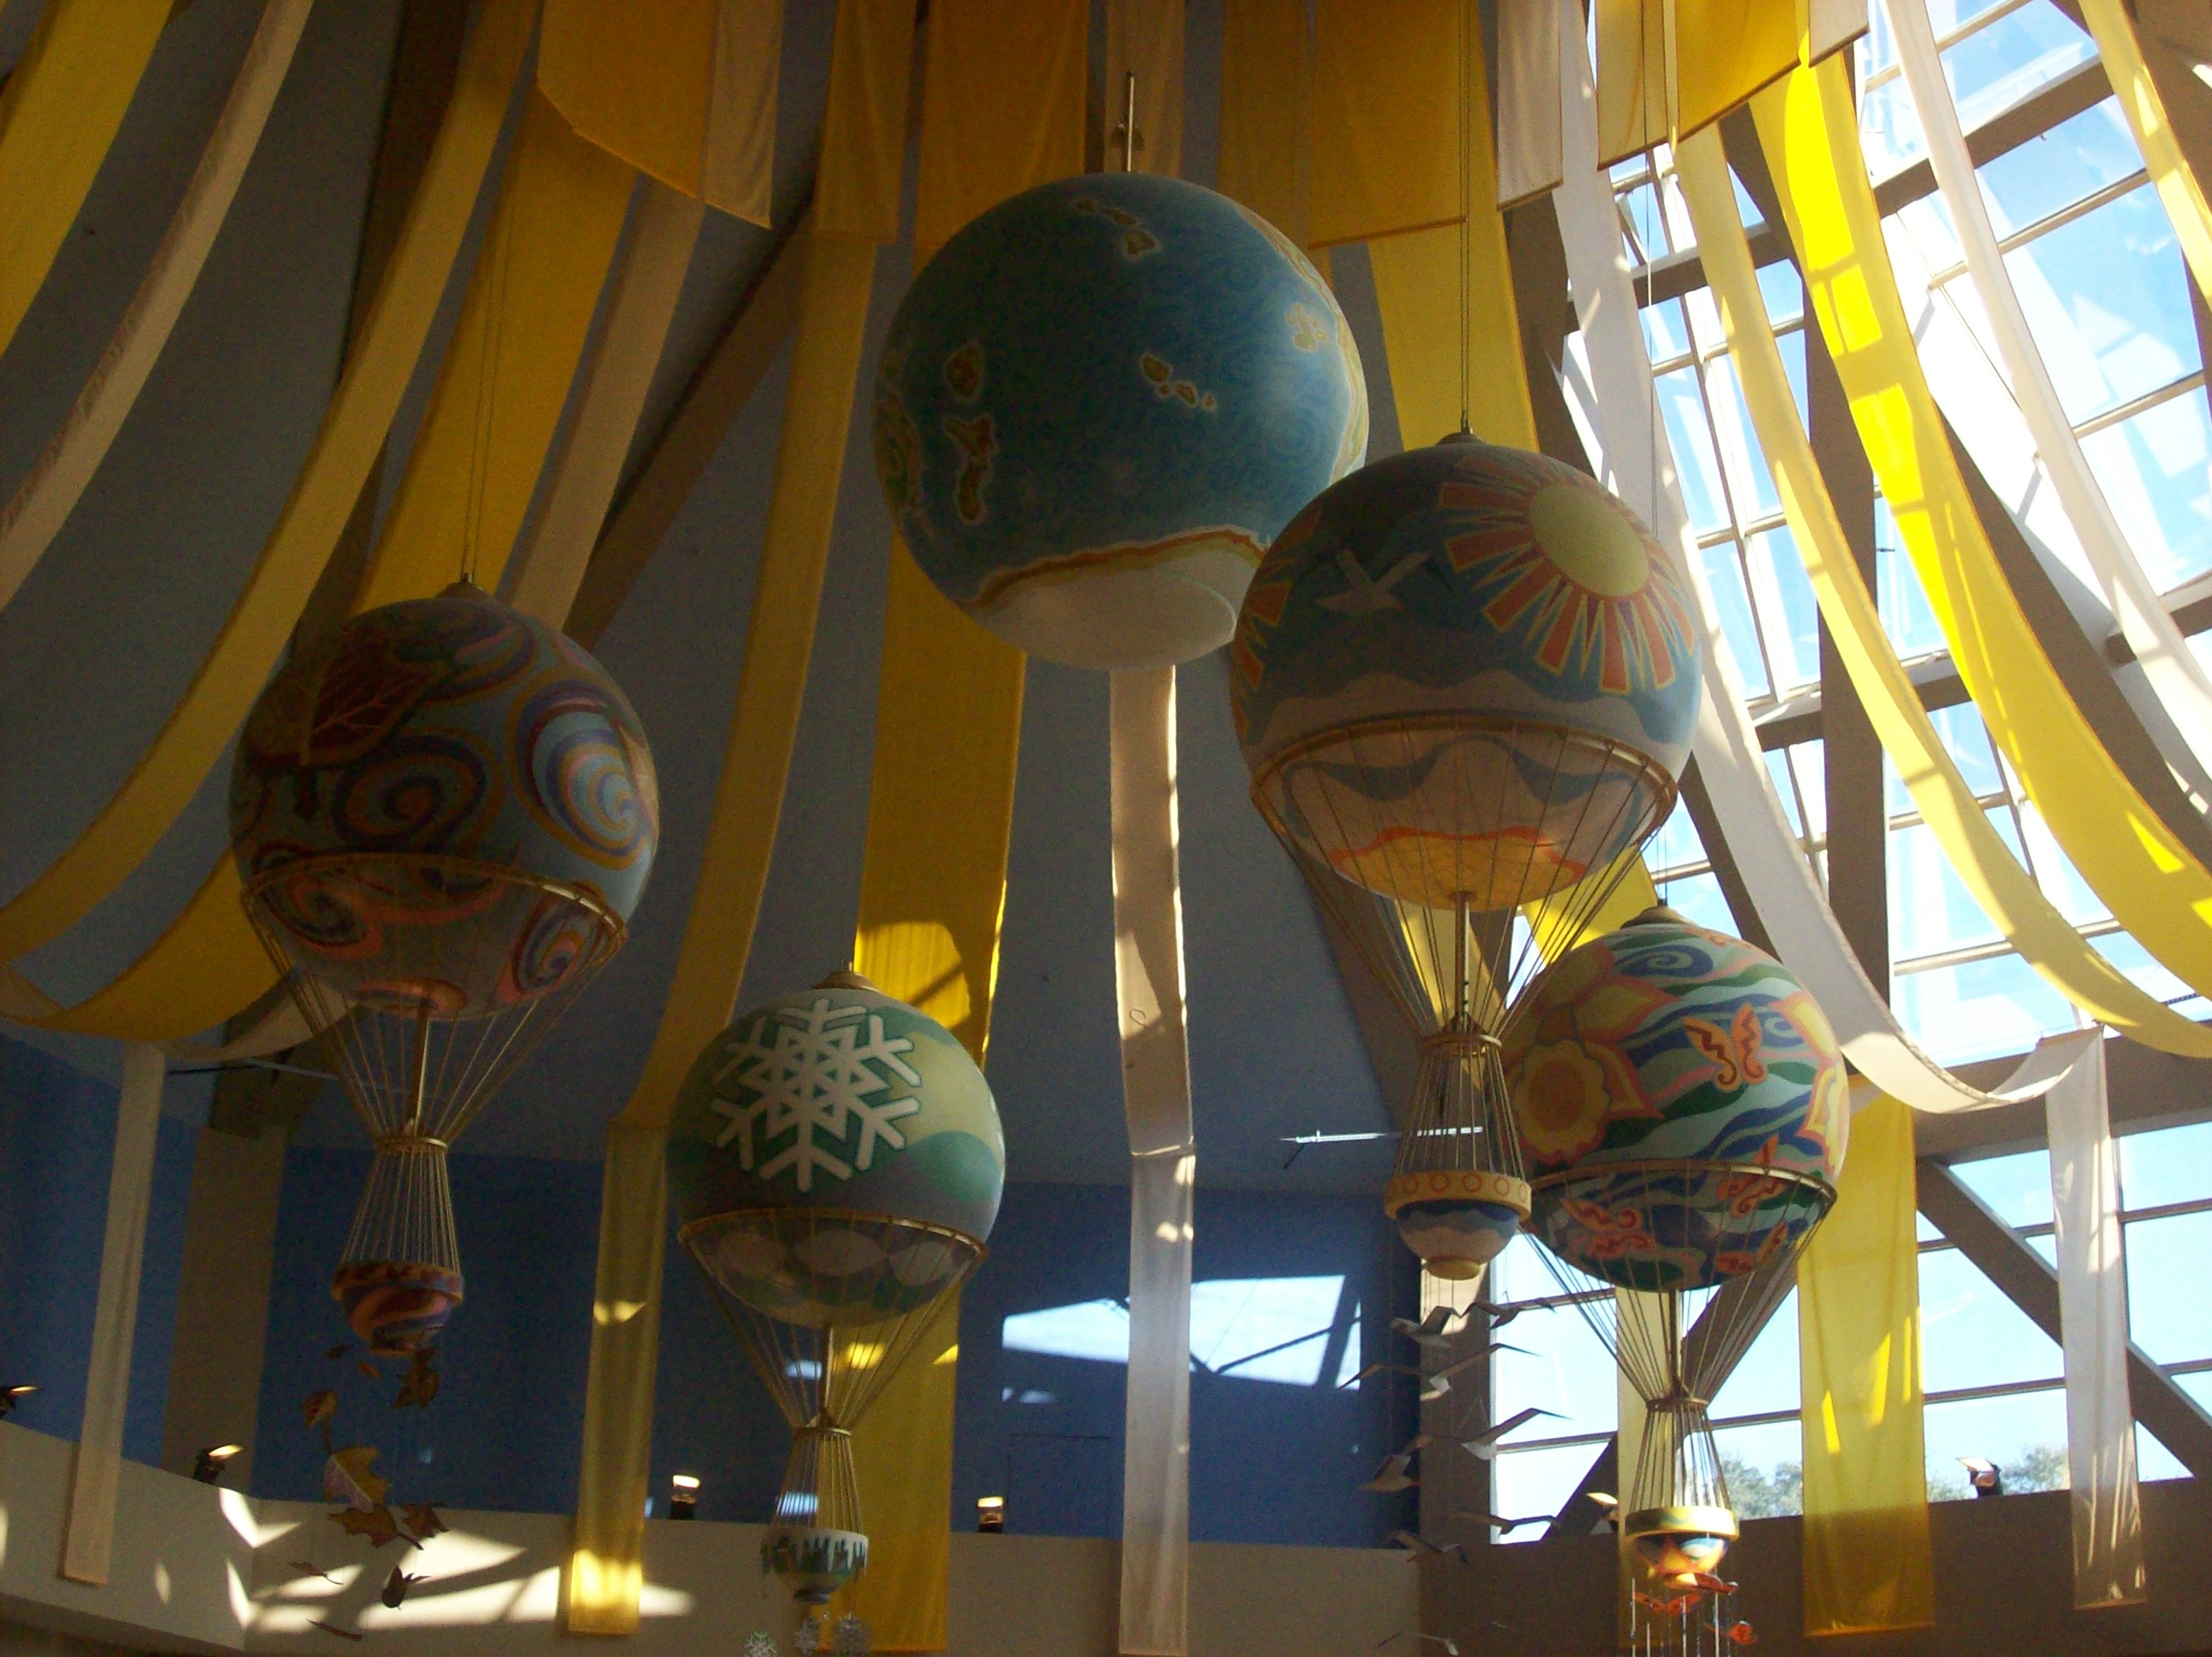 Wordless Wednesday: Those Magical Balloons